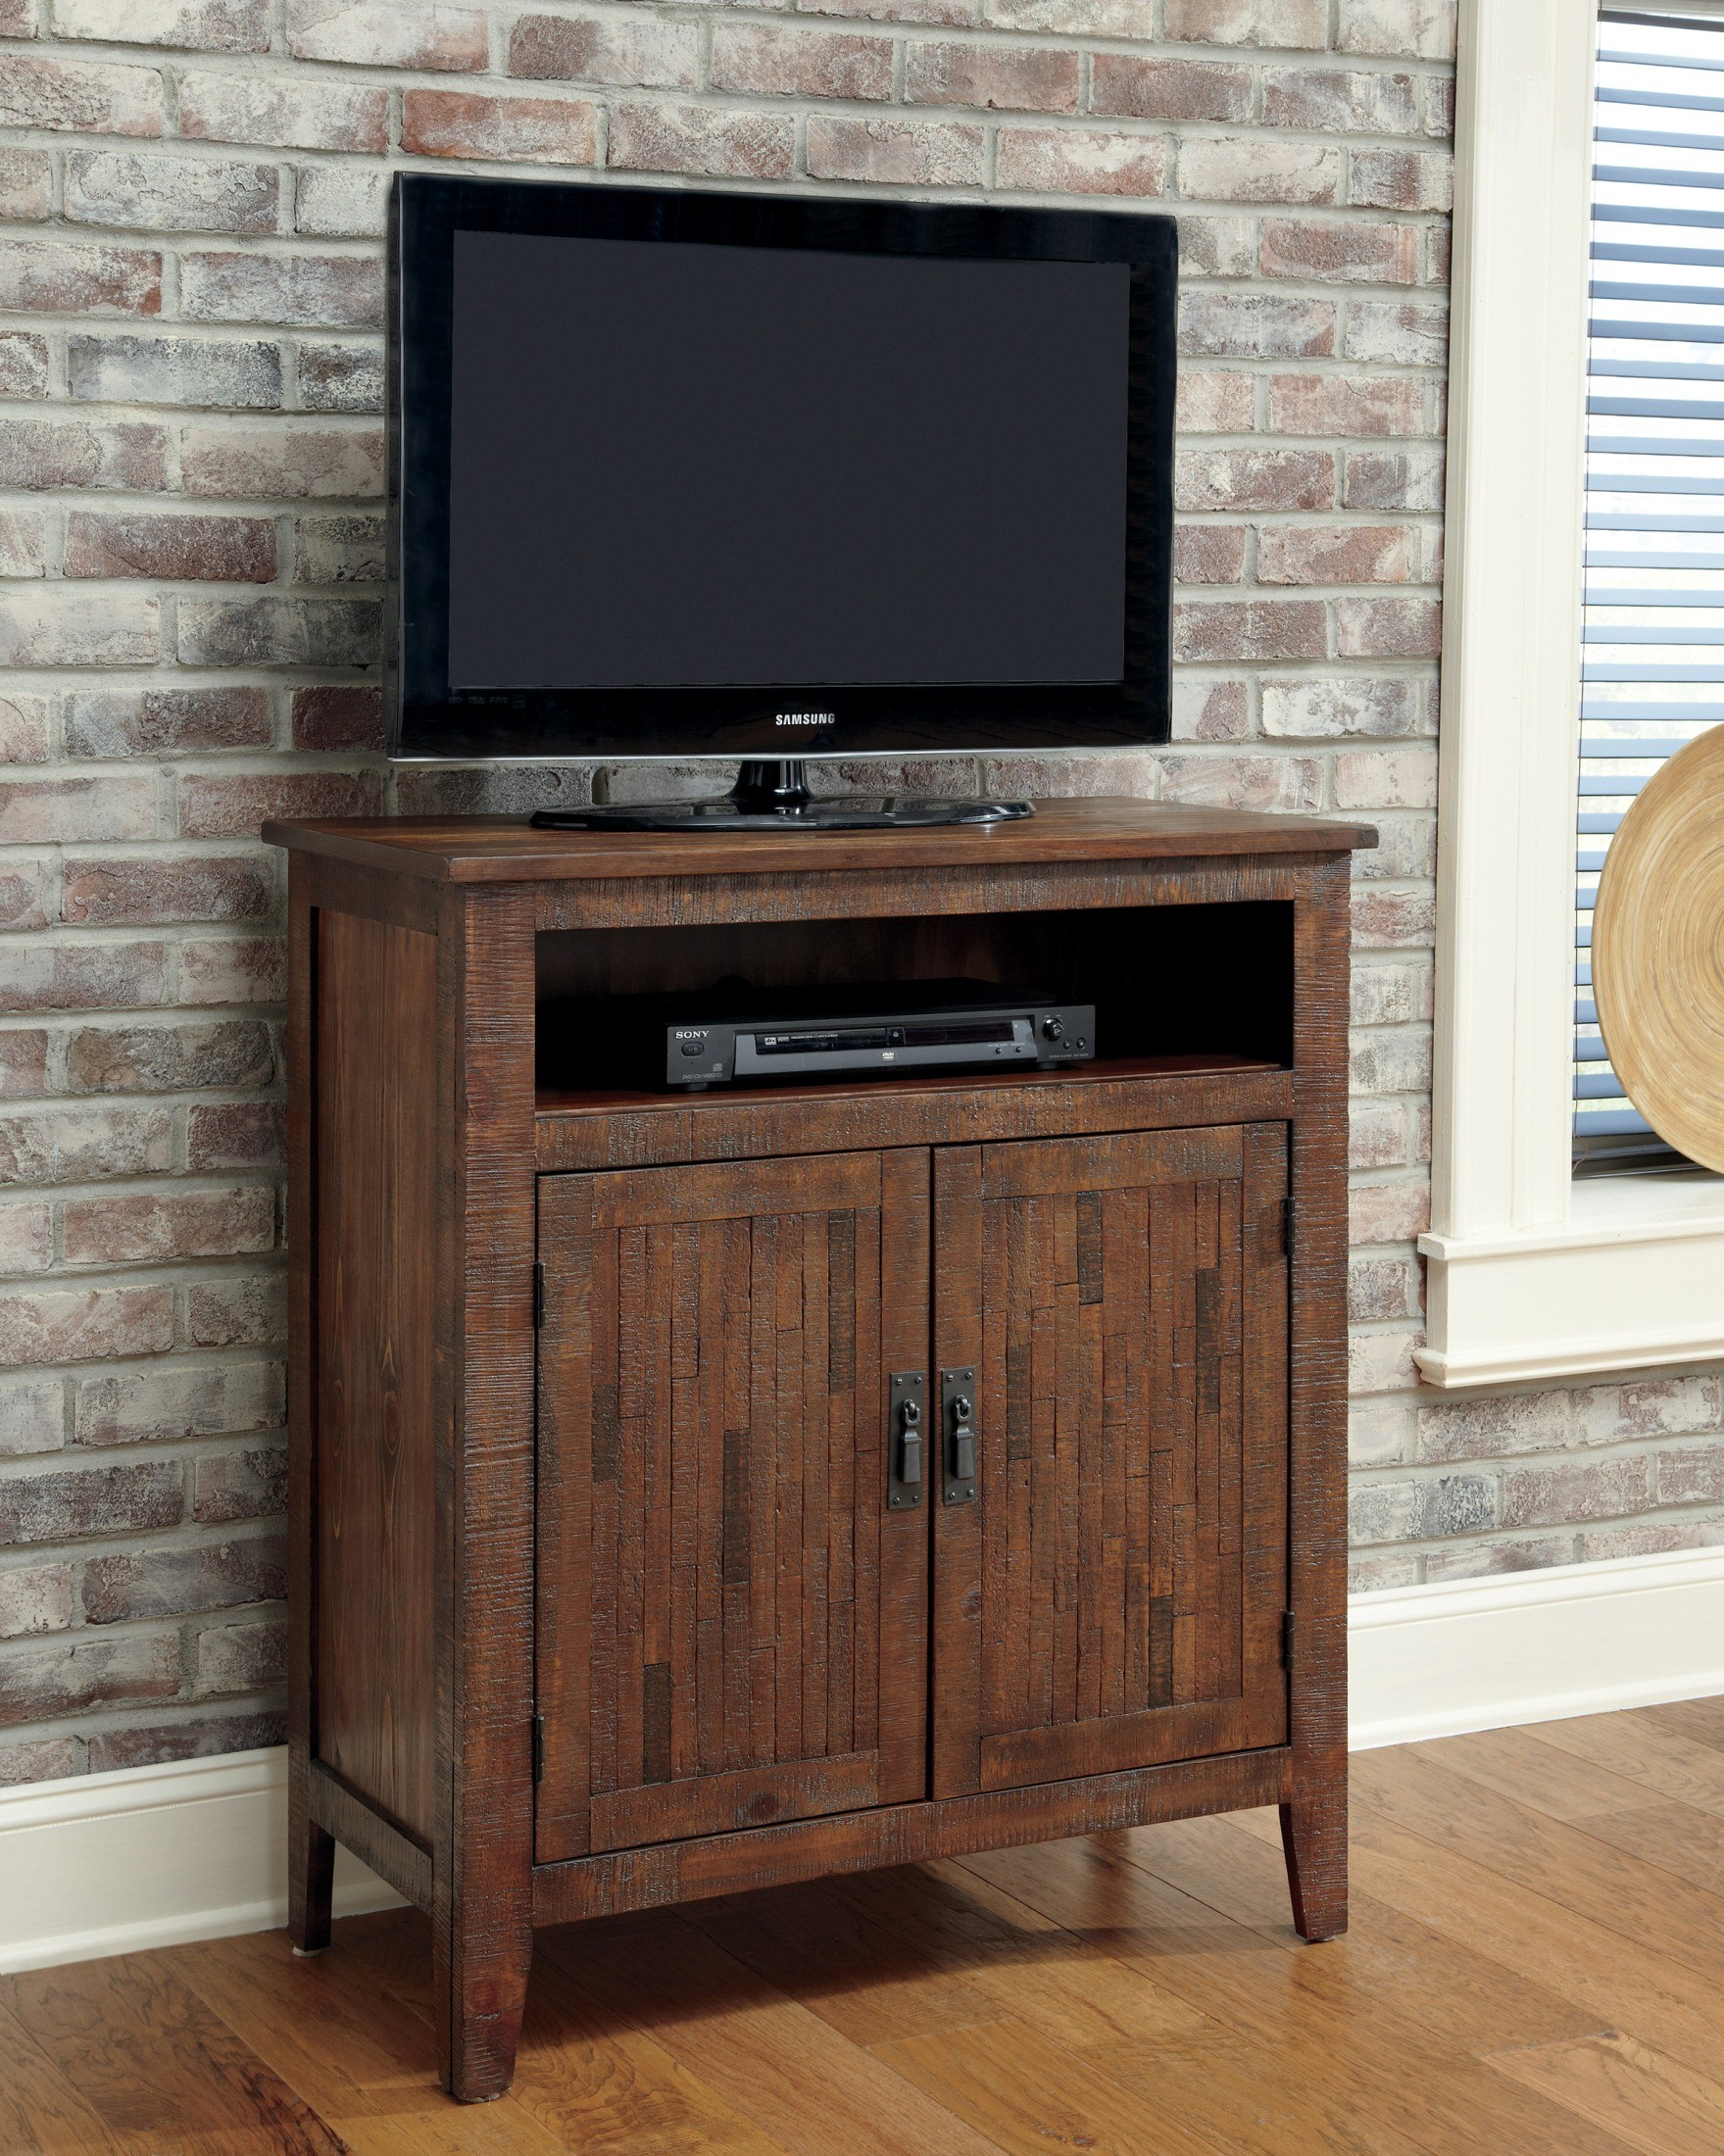 Rustic Accents Burnished Brown Accent Media Cabinet T500 442 Ashley Furniture